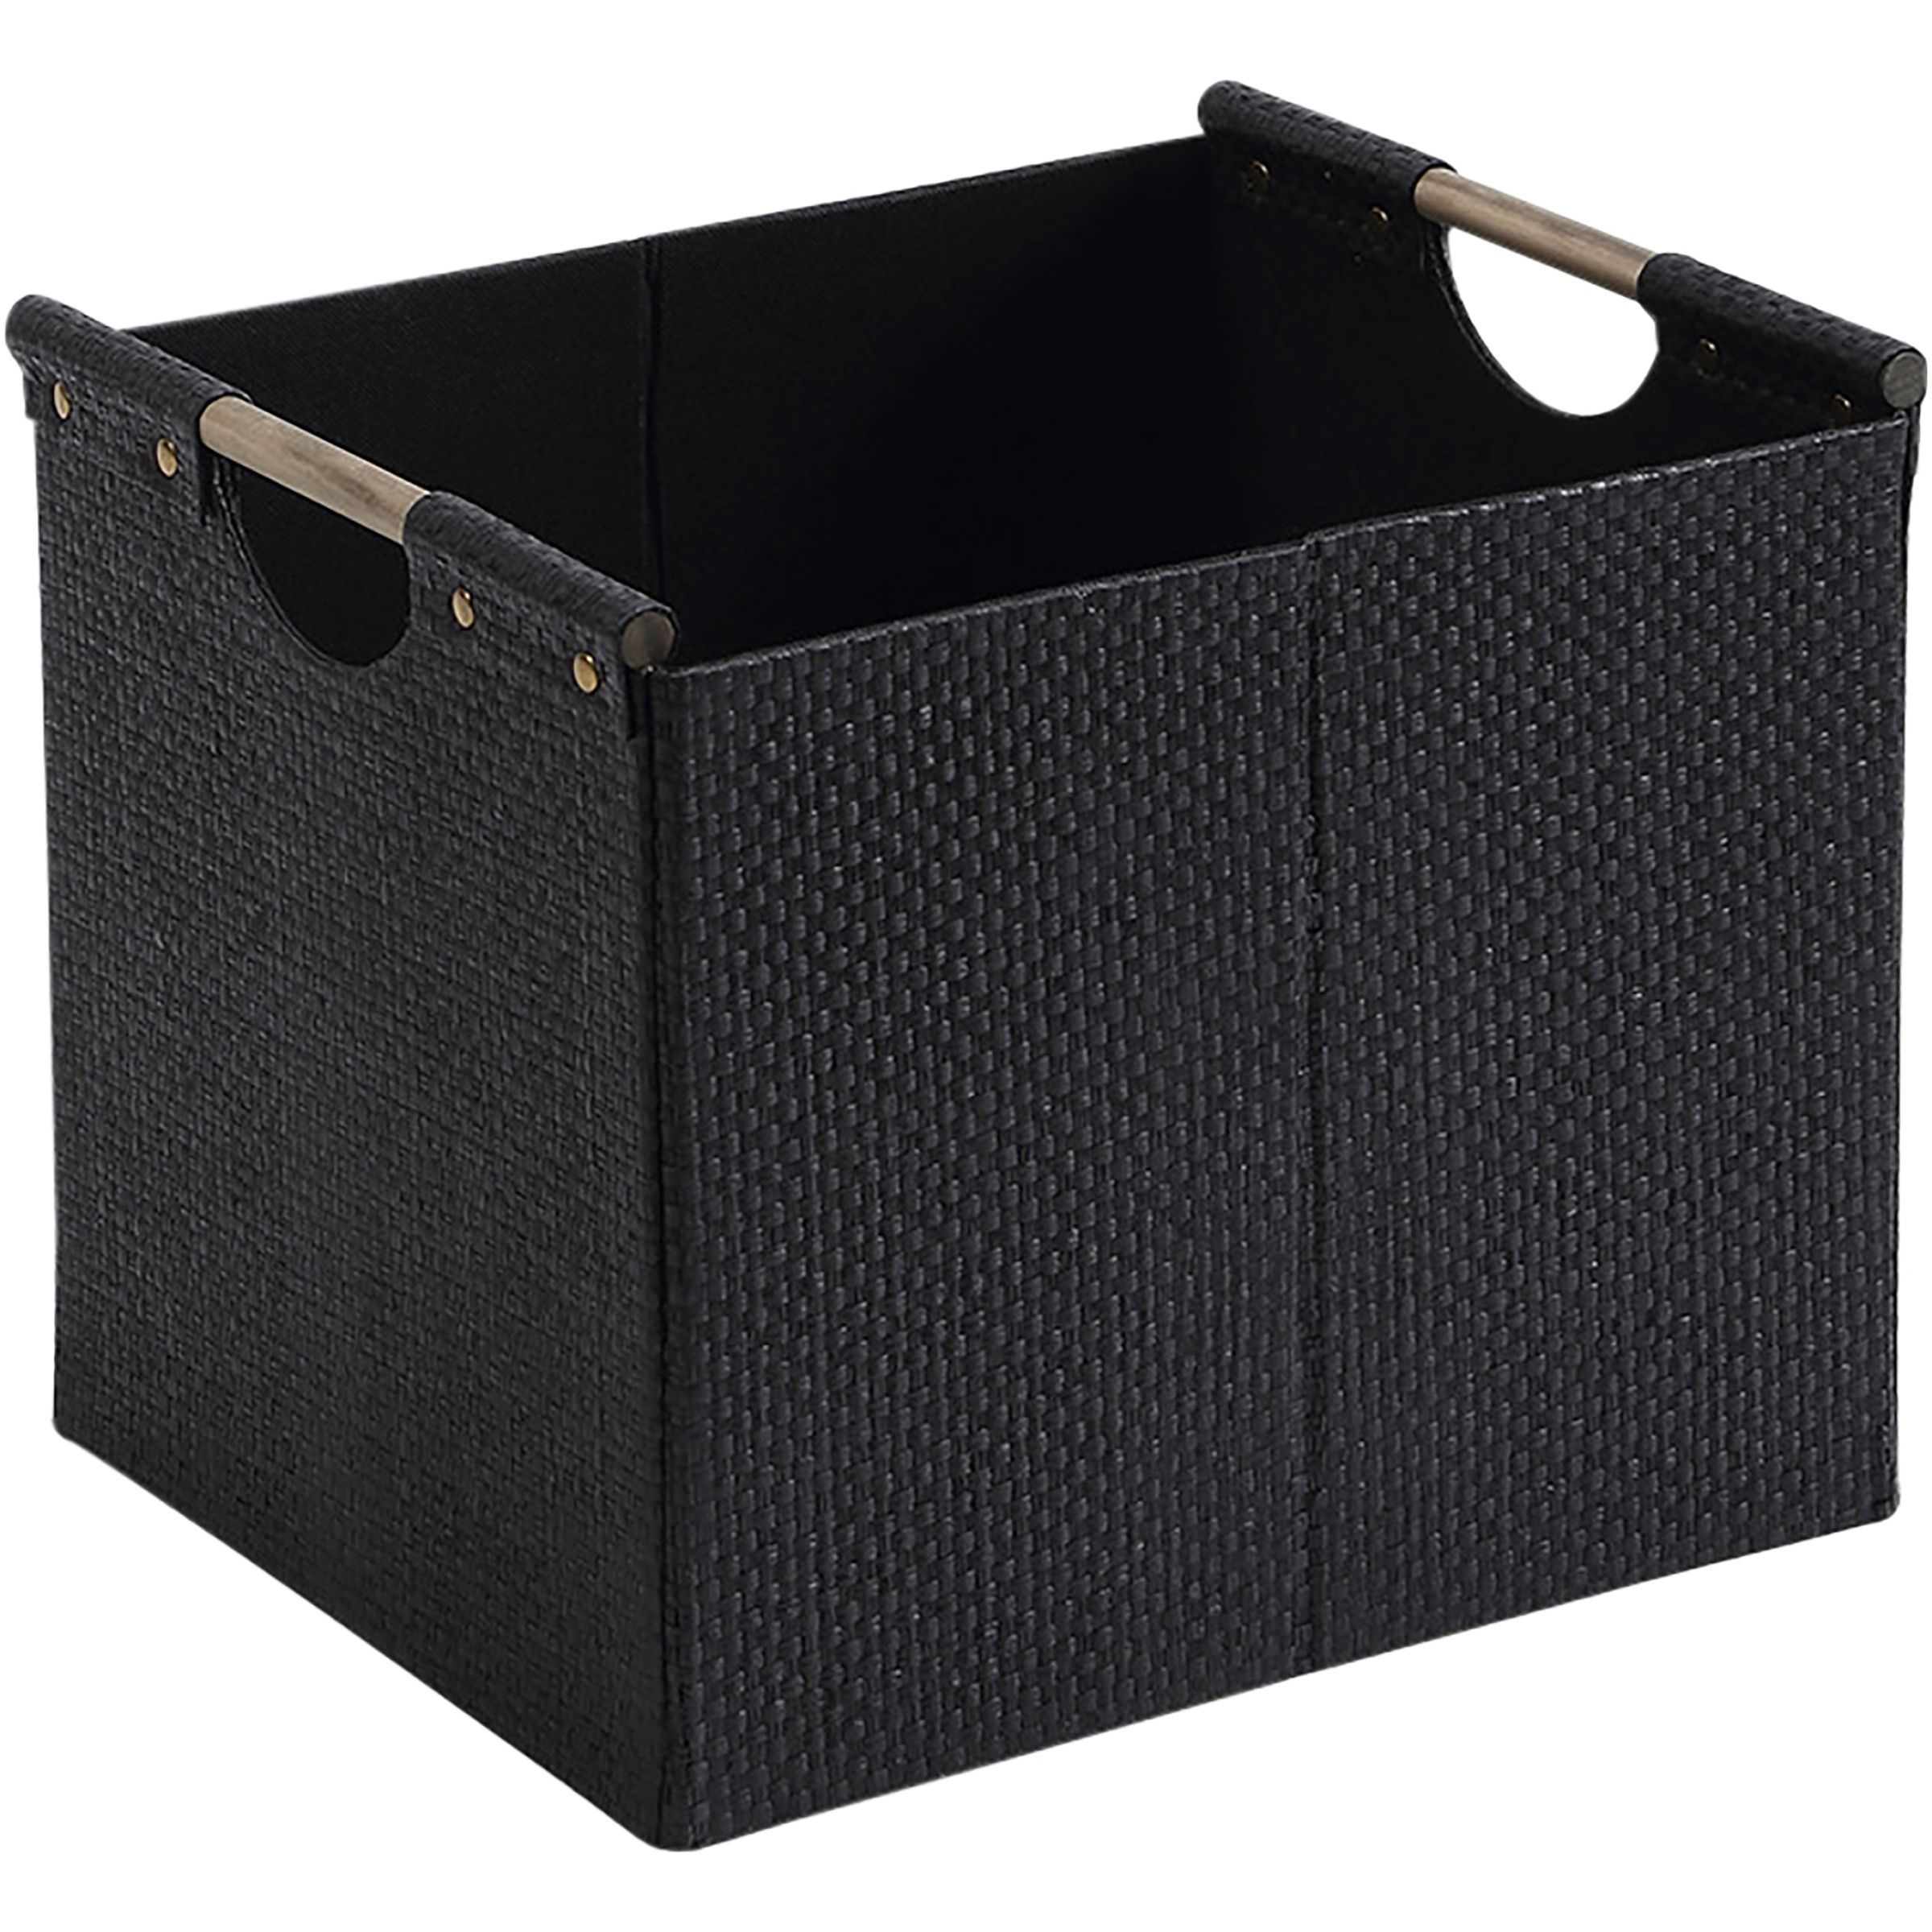 Better Homes And Gardens Woven Storage Bin Brown Durable Construction Walmart Com Storage Bin Storage Better Homes